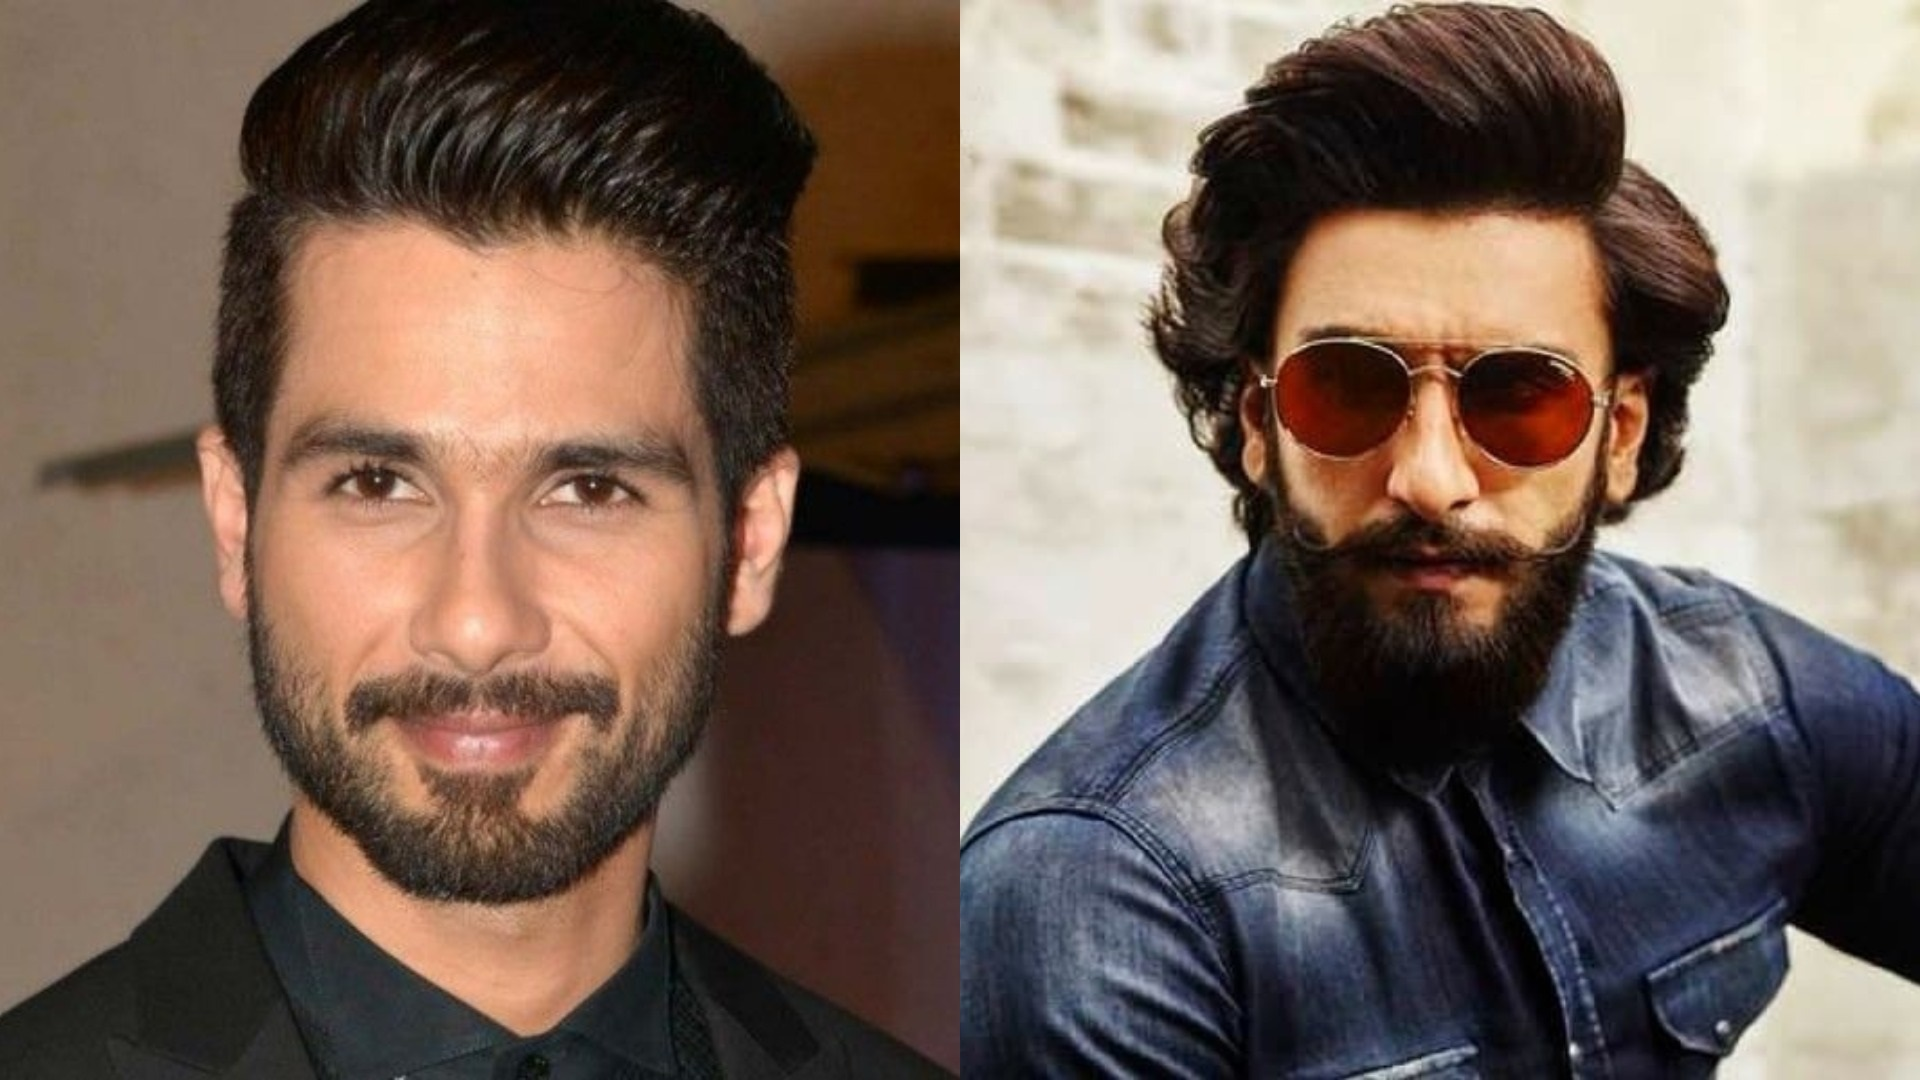 Hairstyles-for-Indian-Men Insanely Cool Hairstyles for Indian Men